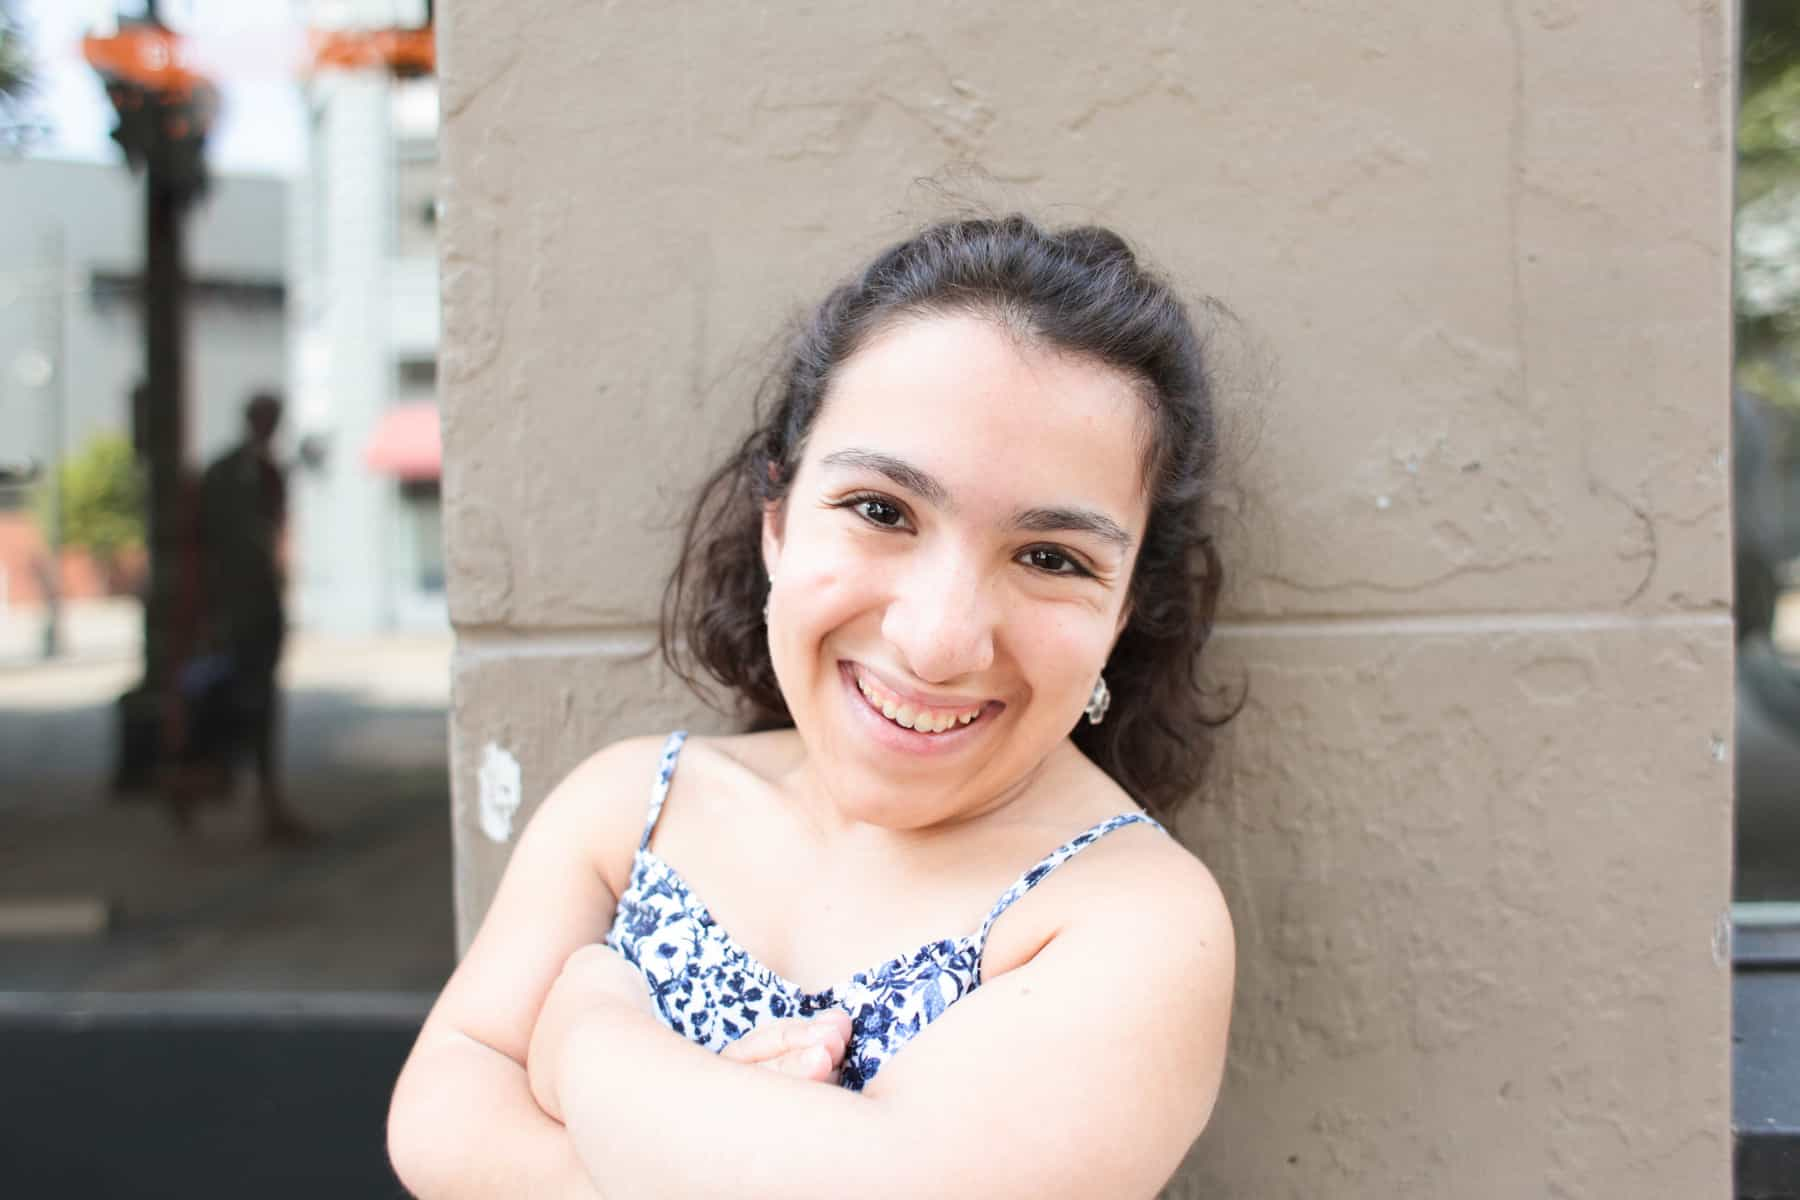 Cuquis smiling, arms crossed with wall in background